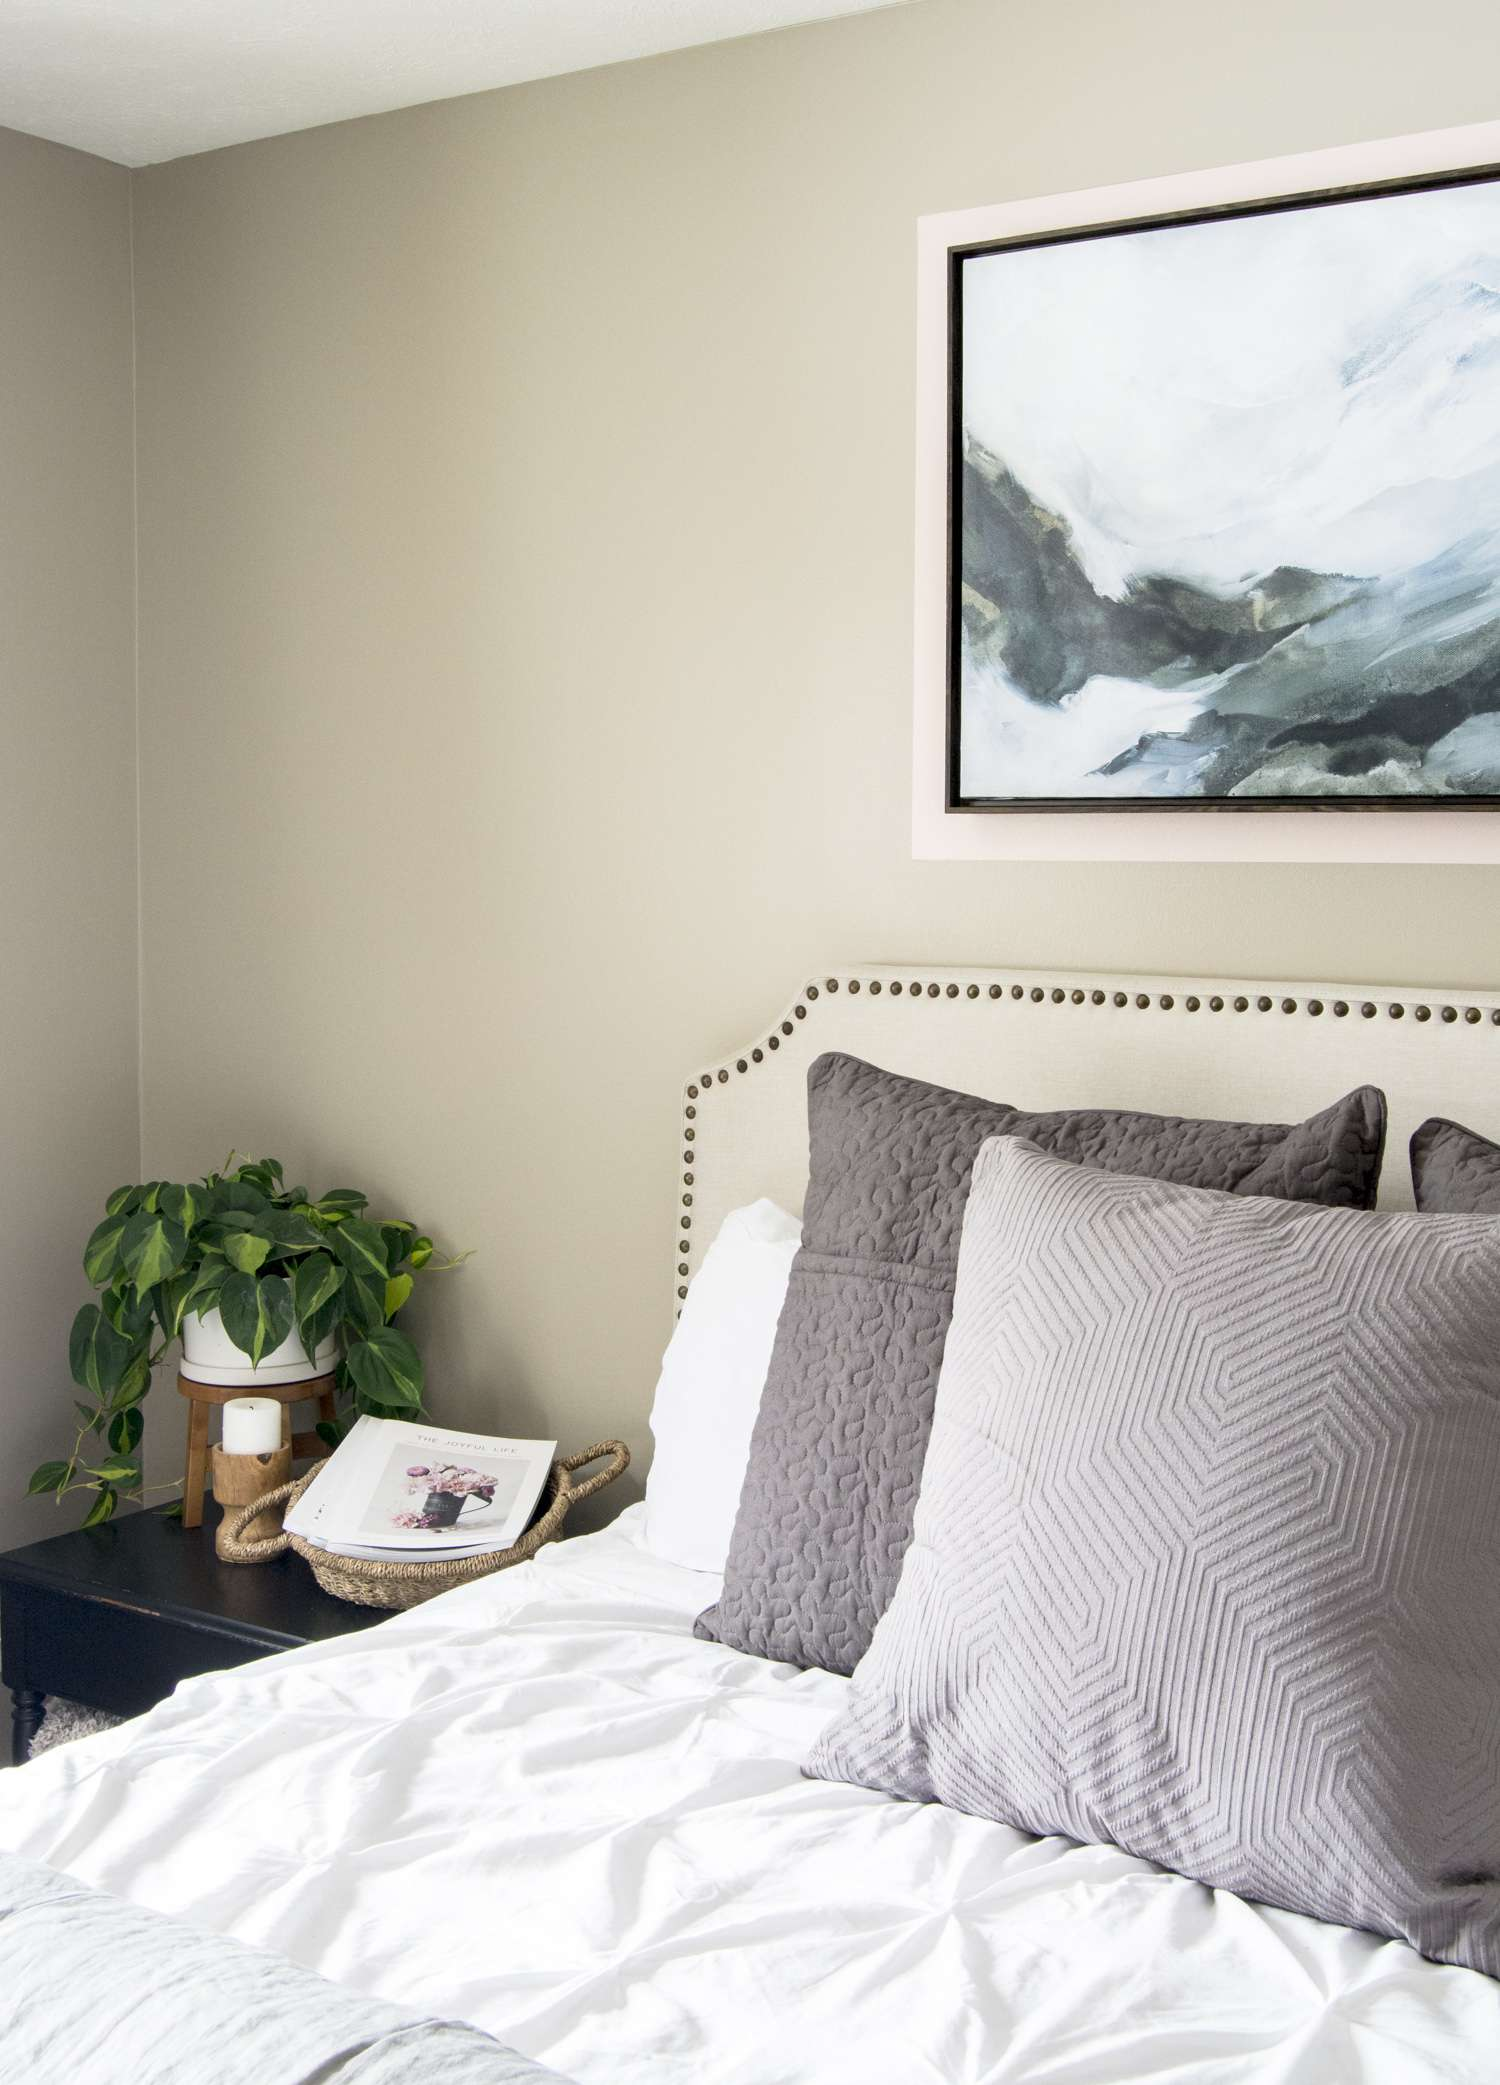 Guest bedroom soft color palette design.